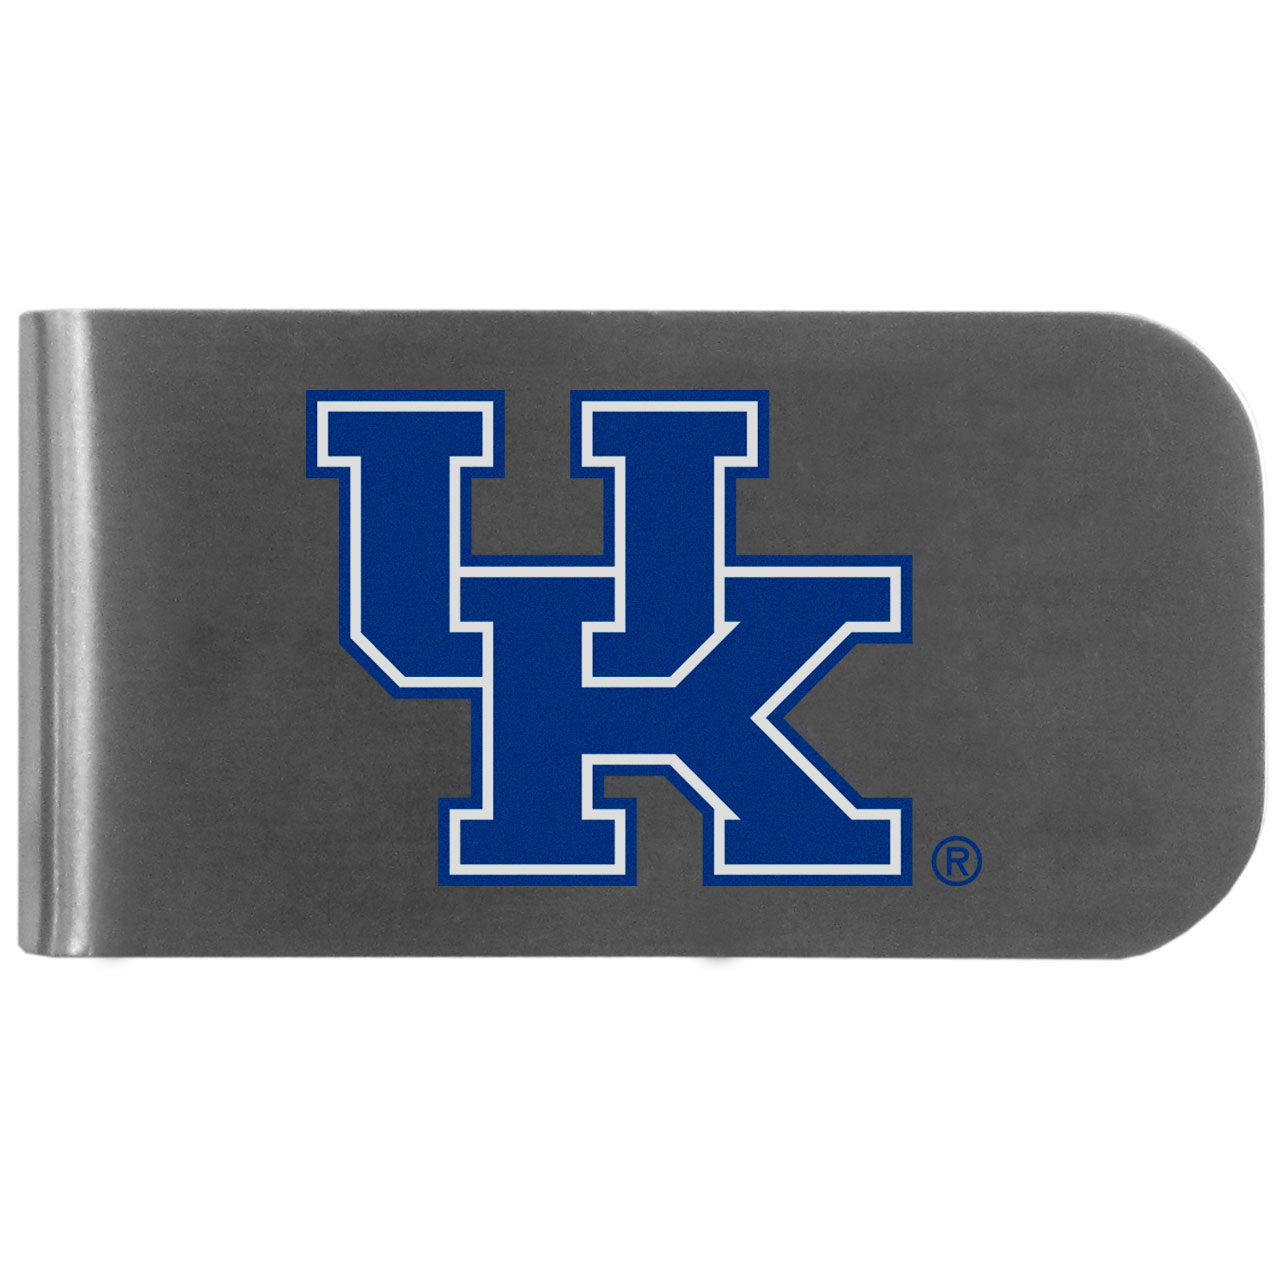 Kentucky Wildcats Logo Bottle Opener Money Clip - This unique money clip features a classic, brushed-metal finish with a handy bottle opener feature on the back. The clip has the Kentucky Wildcats logo expertly printed on the front of the clip.